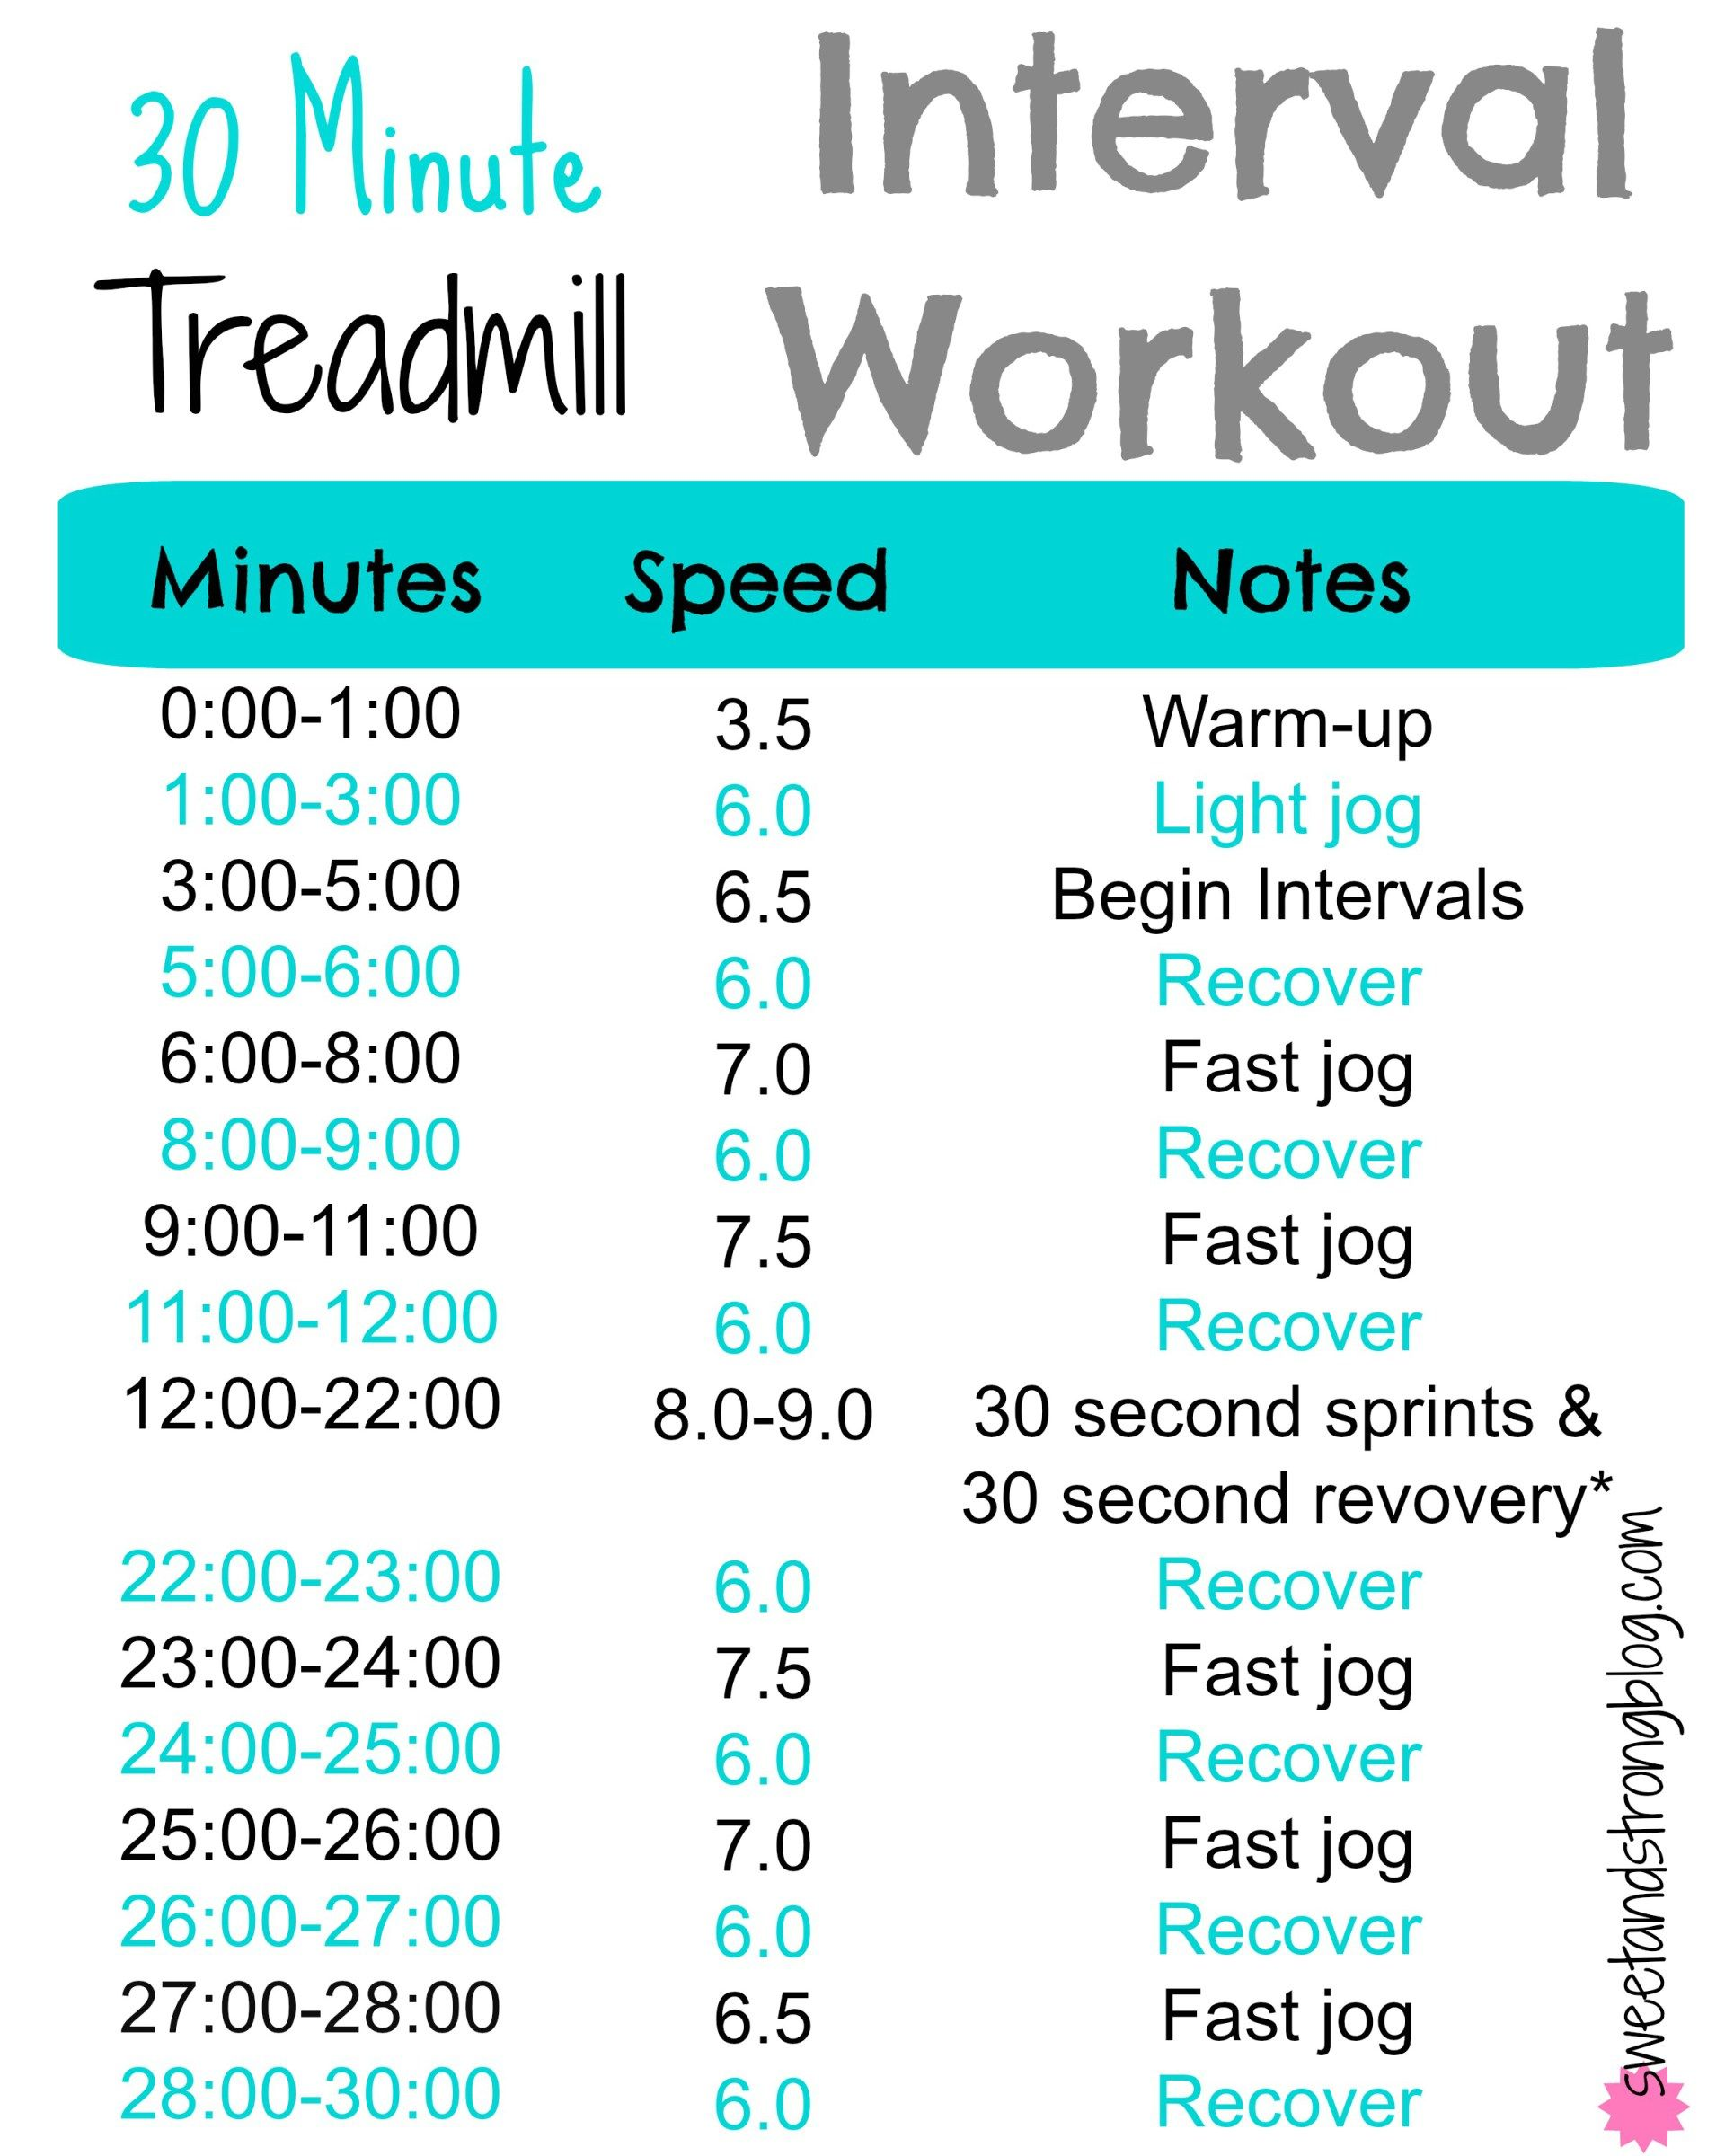 Treadmill Interval Workouts: Sprint Training With A 30 Minute Treadmill Interval